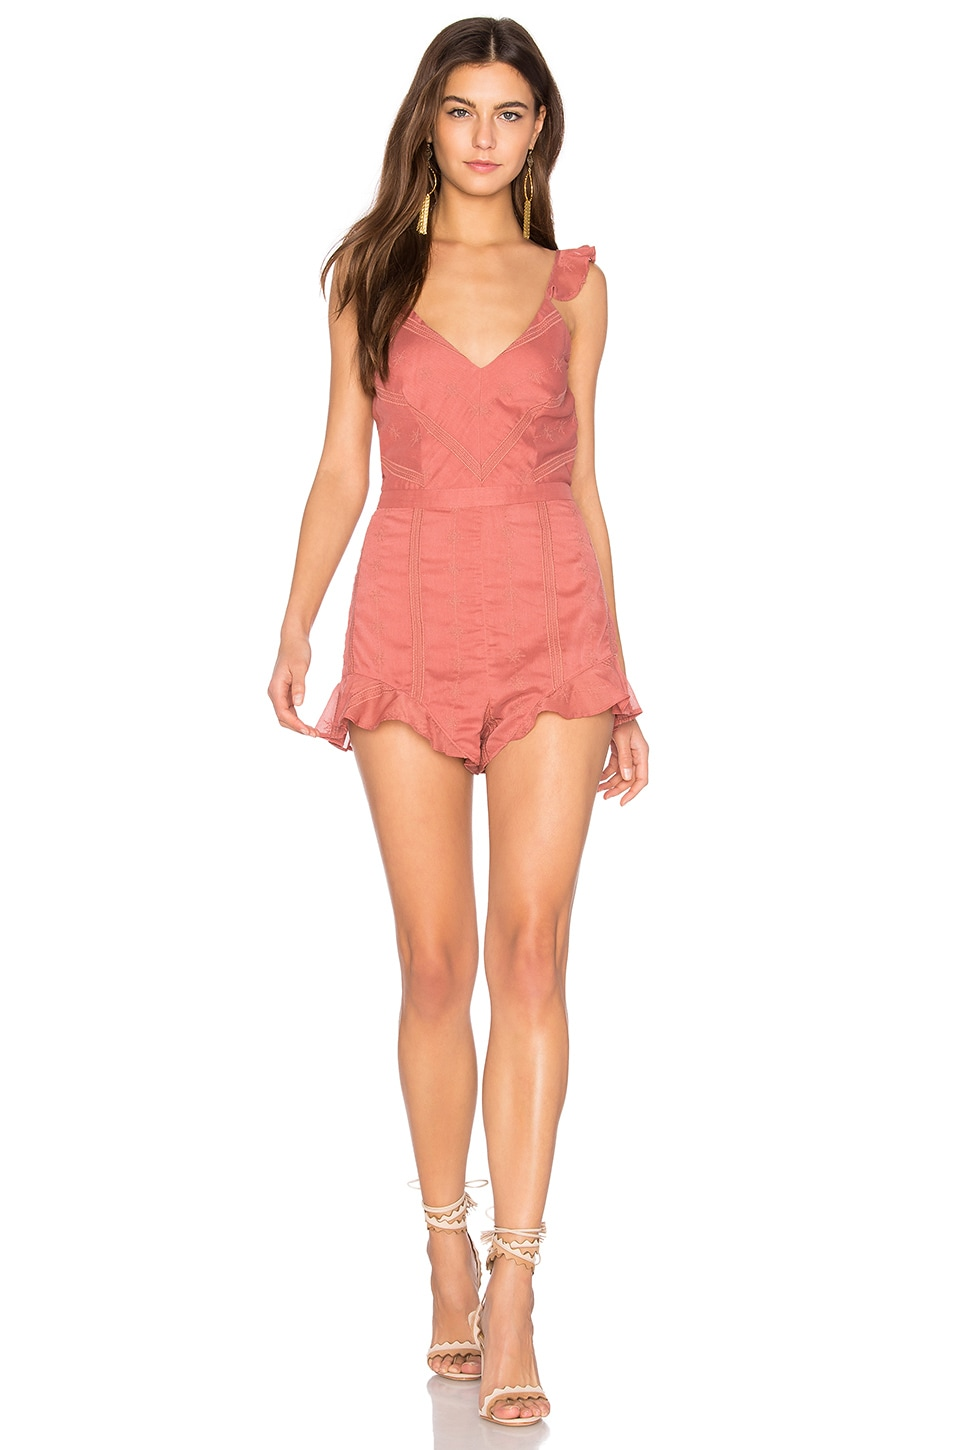 Getaway Romper by The Jetset Diaries